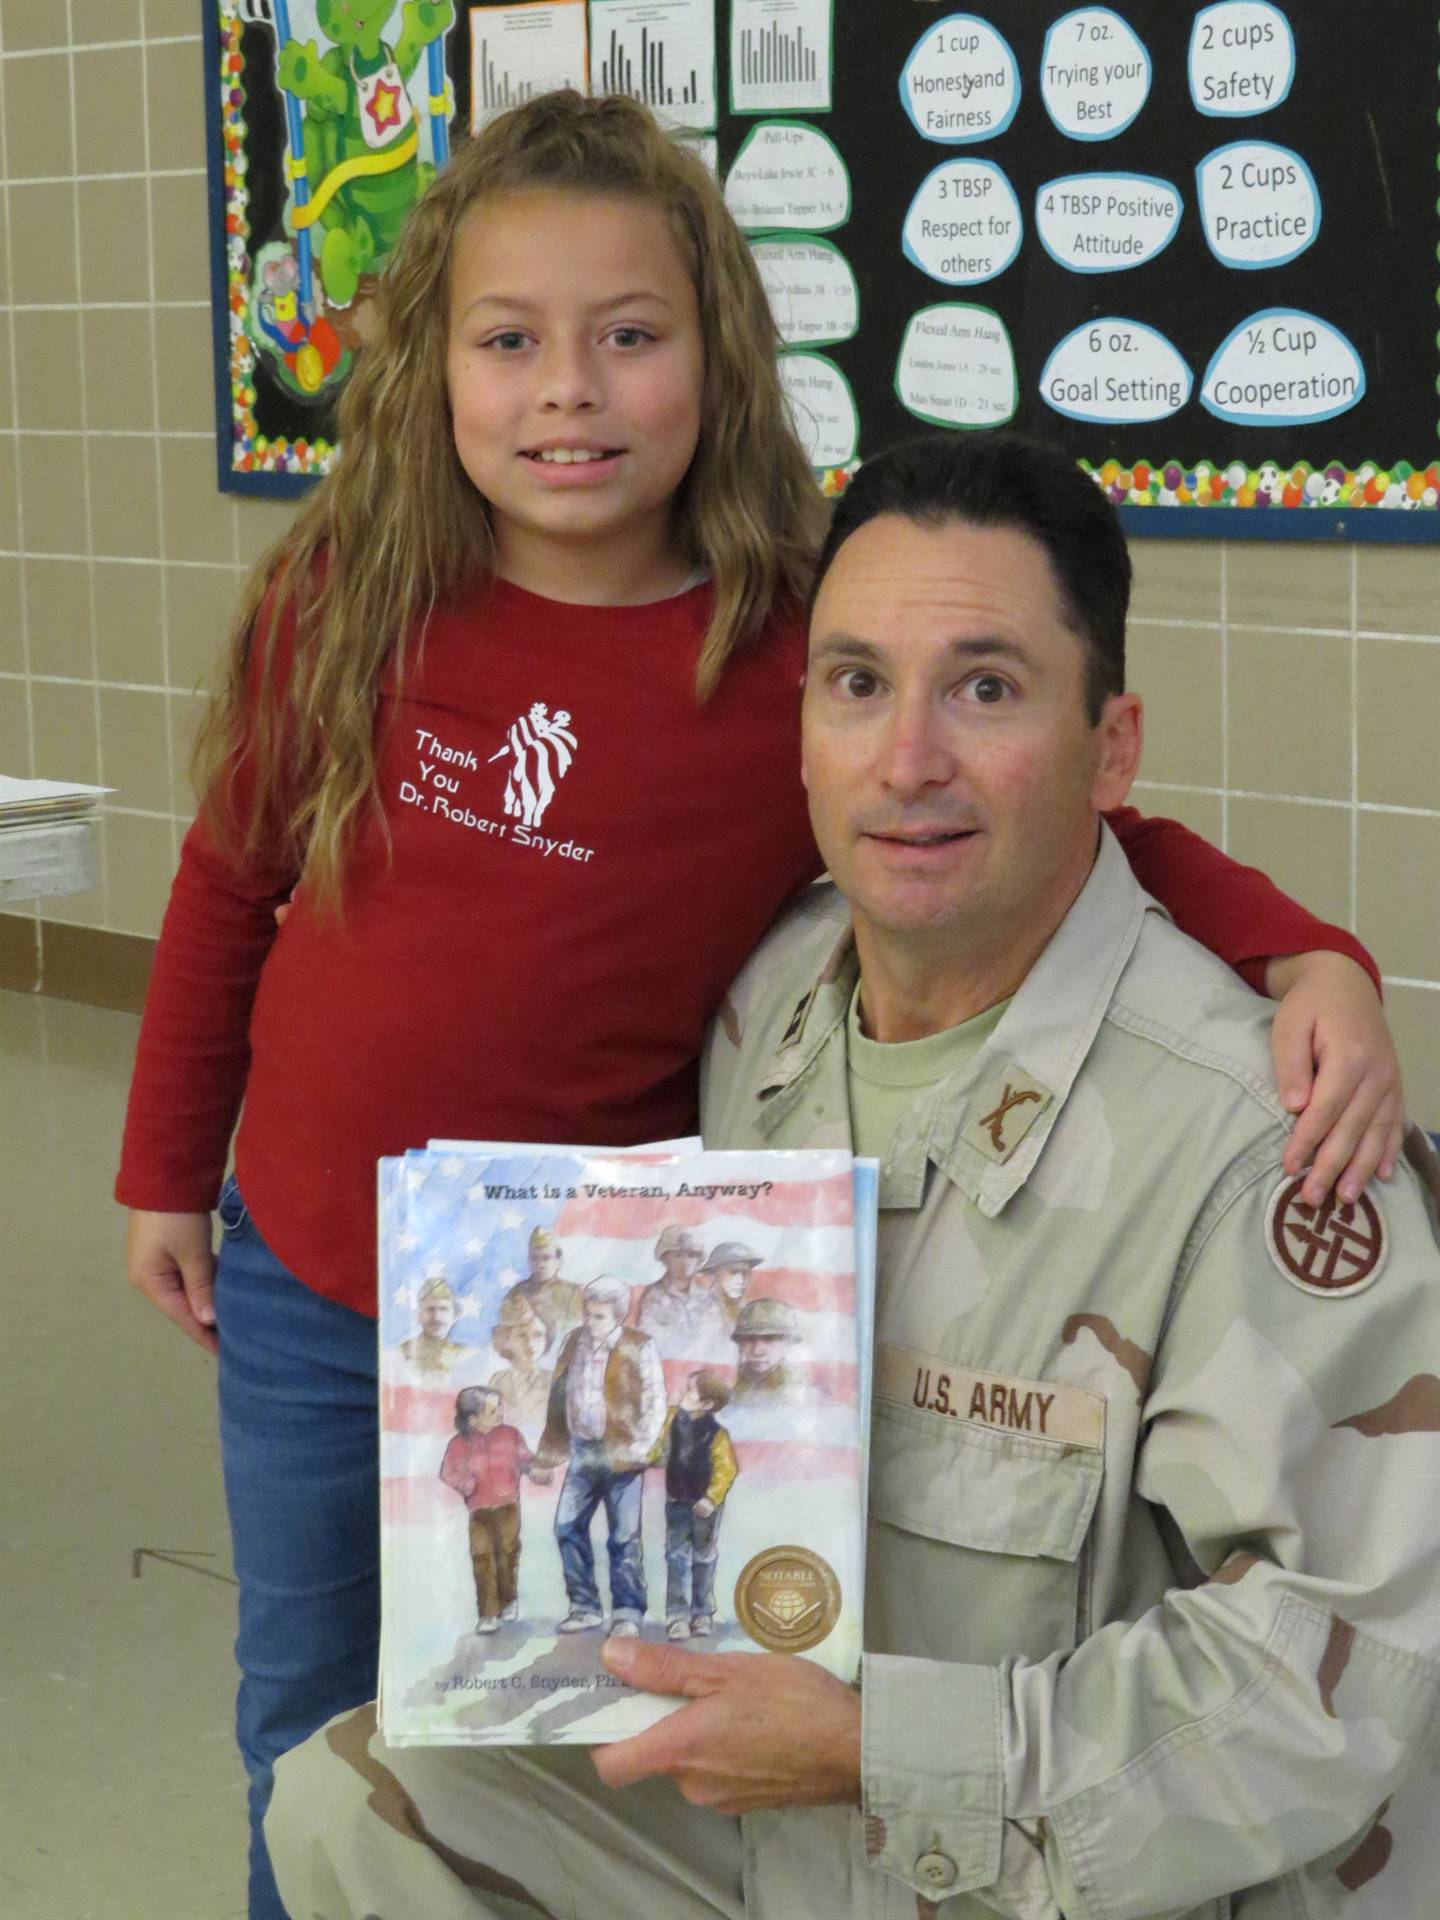 "Dr. Robert-Snyder ""What-is-a-Veteran"" Author"